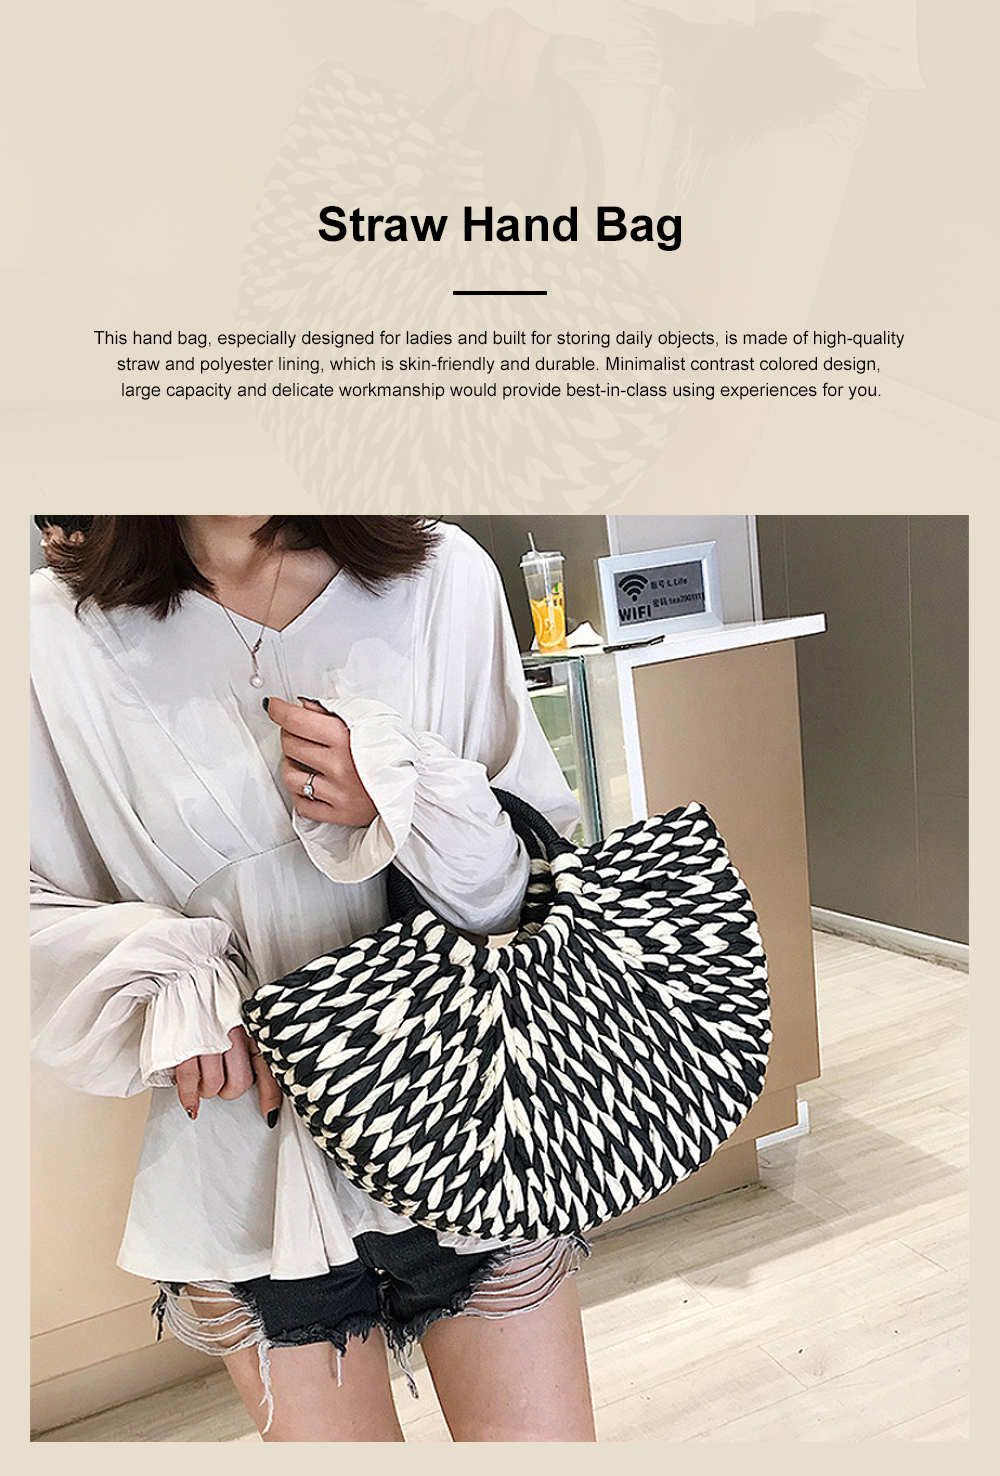 Fancy Elegant Contrast Colored Lady Straw Hand Bag, Minimalist Arch Vacation Beach Hand Bag for Women 0